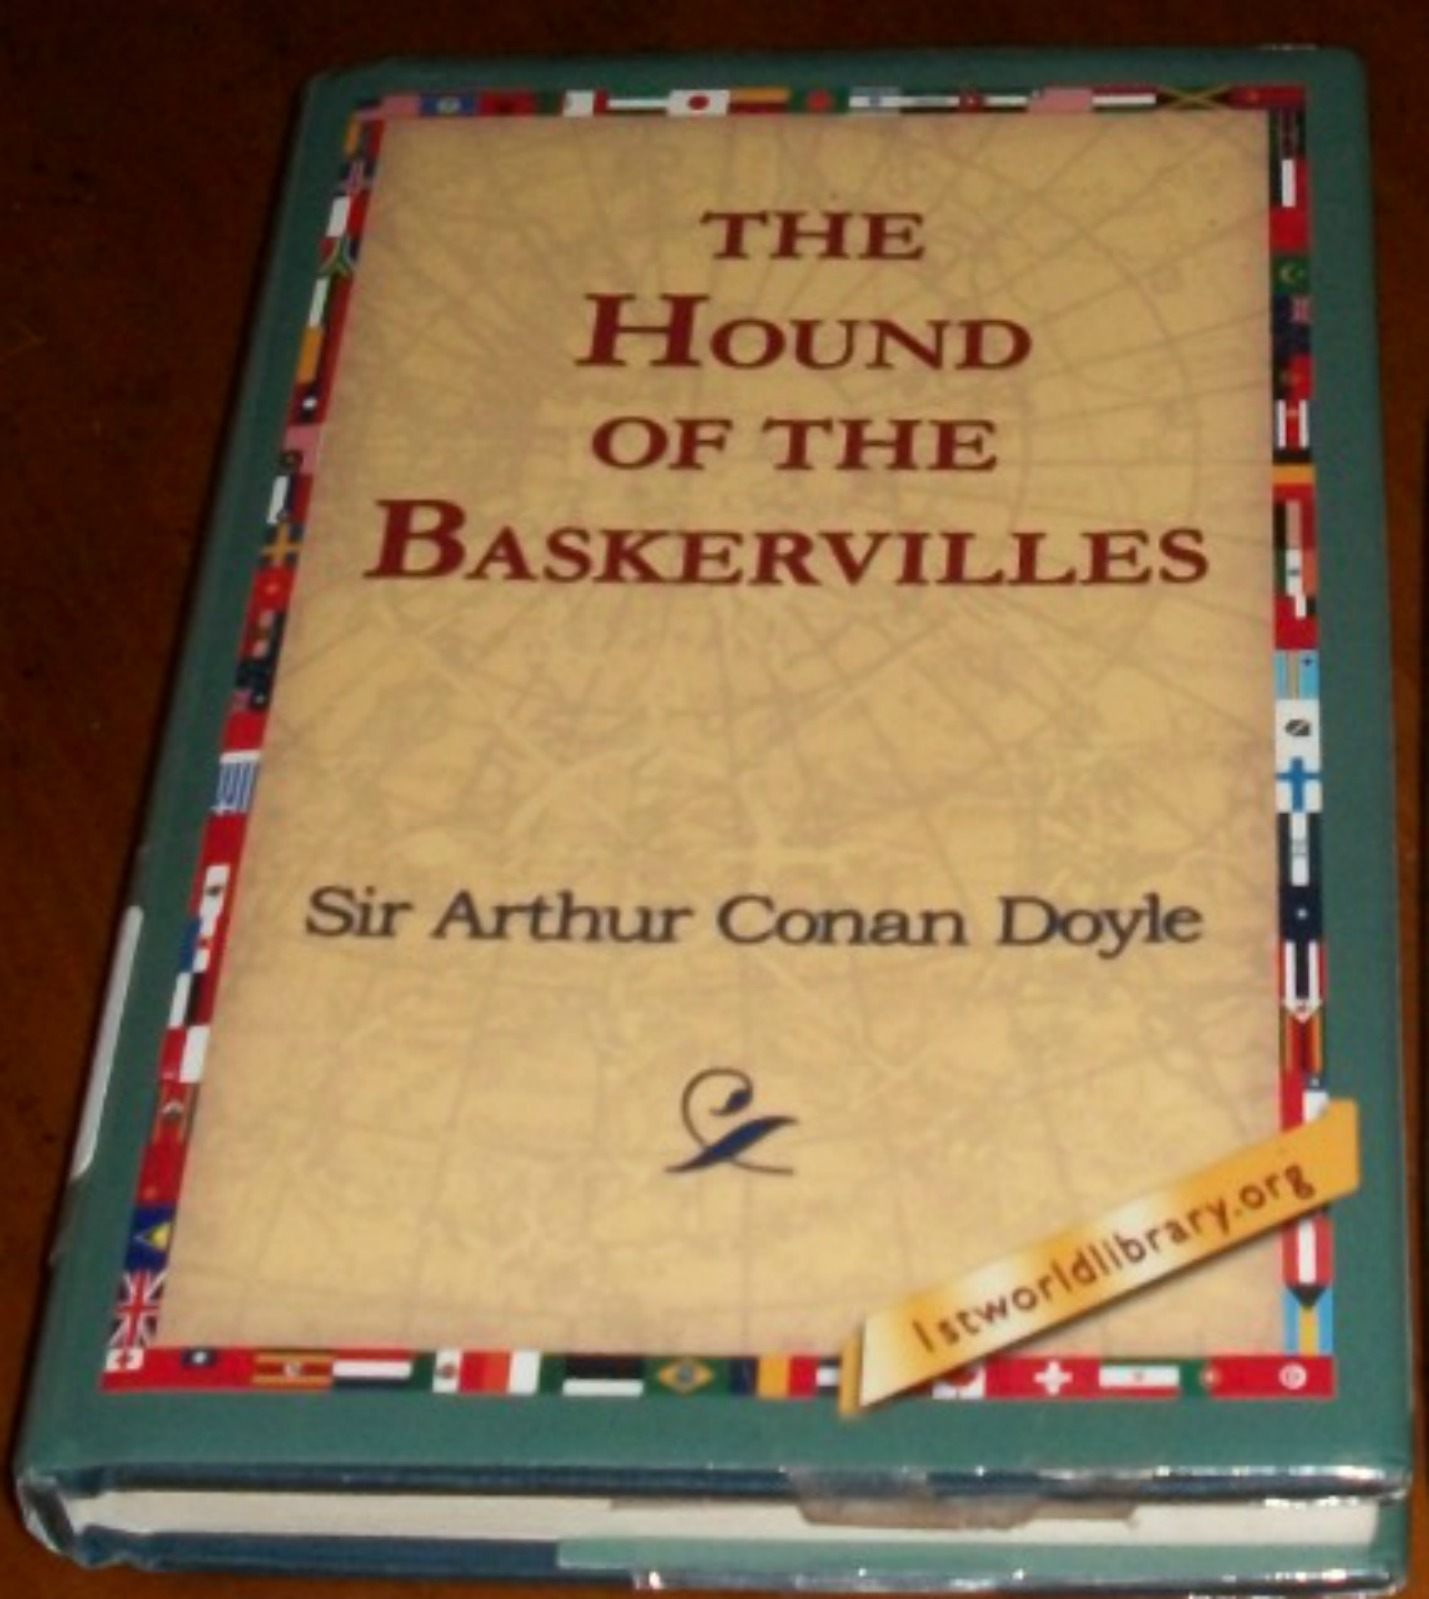 essay on book hound of the baskervilles The hound of the baskervilles essay examples  and mr frankland in the hound of baskervilles by sir arthur conan doyle  an analysis of the book the hound of.